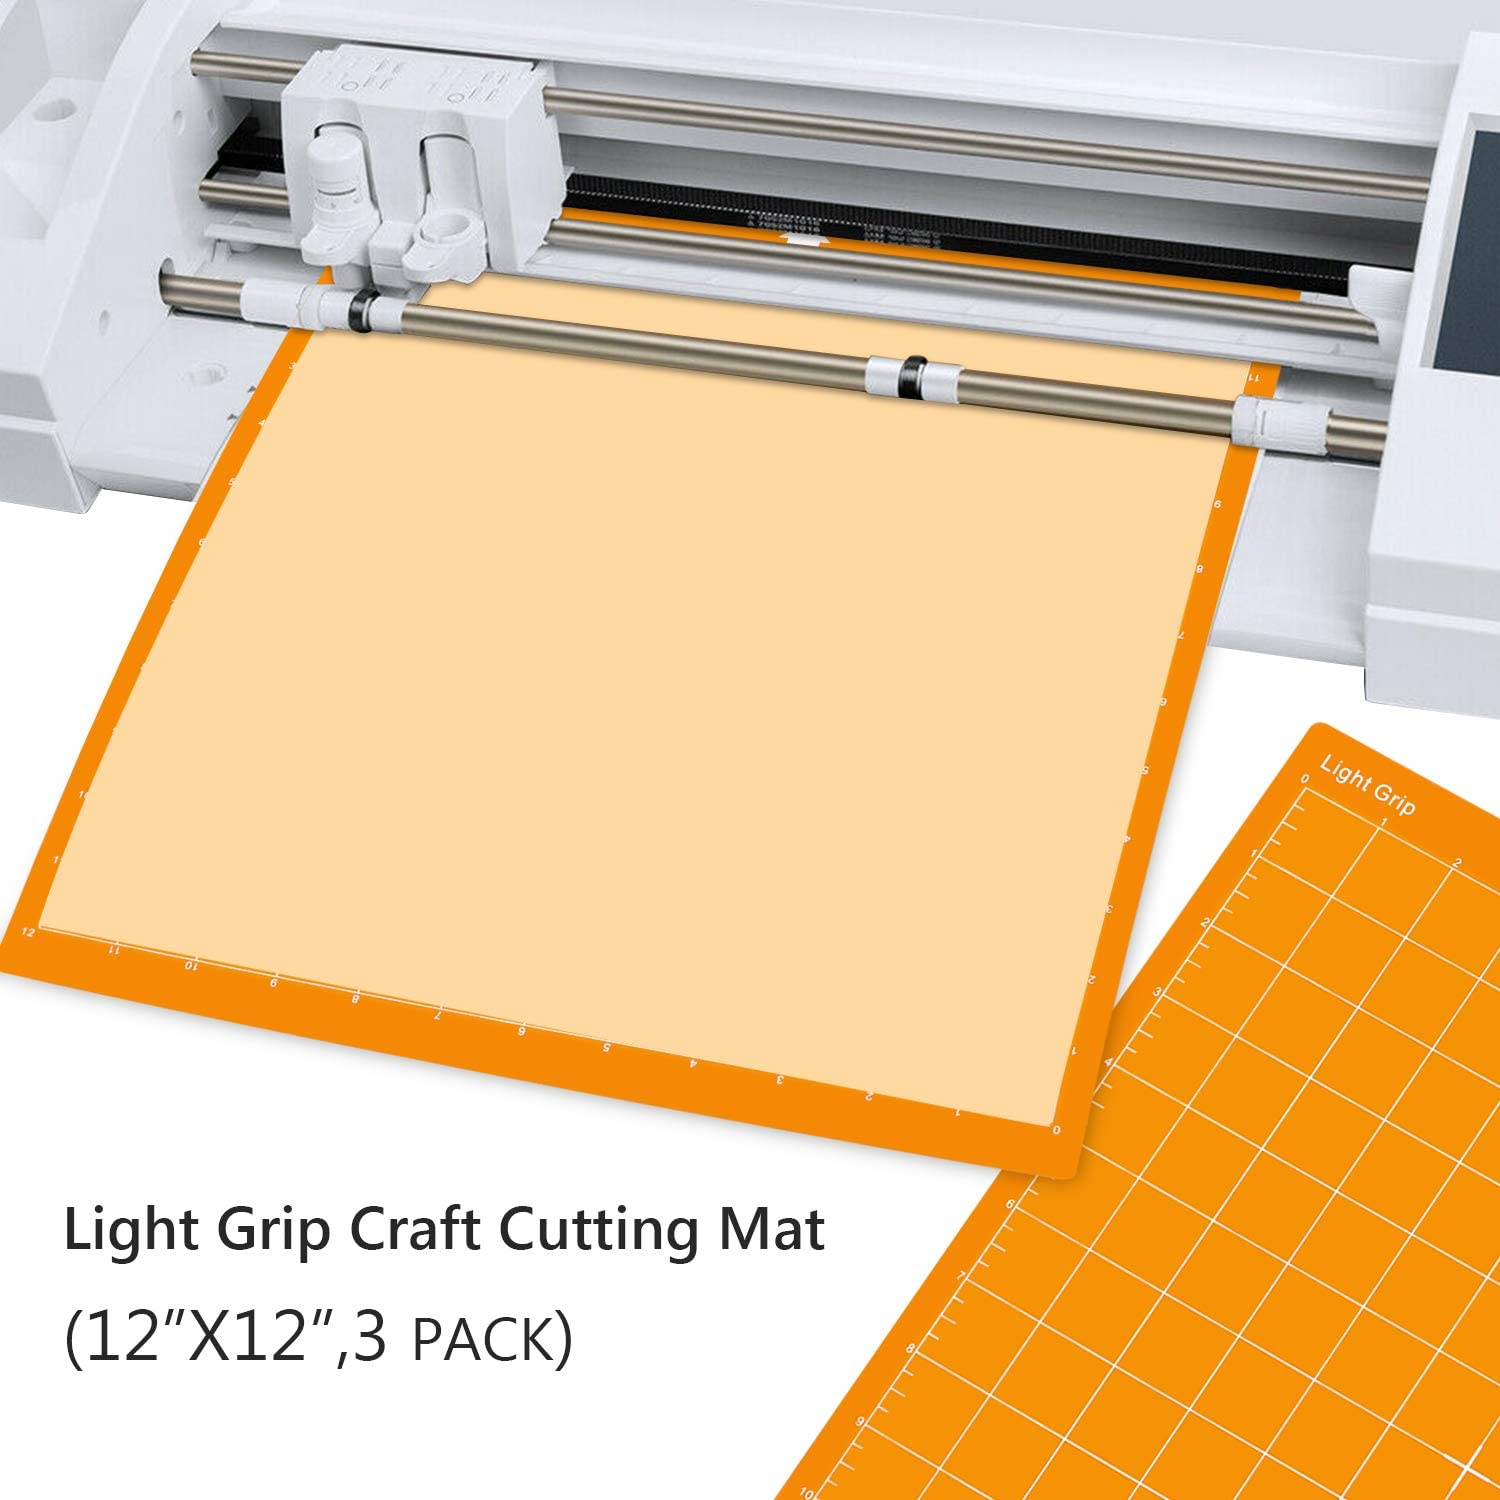 Healing Cutting Mat Enpoint 3 Pcs 12 x 12 in Standard Grip Cutting Board Art Mat Craft Cutting Mat for Silhouette Cameo 3//2//1 Cut Mat with Durable Adhesive Non-Slip PVC for Quilting,Scrapbooking